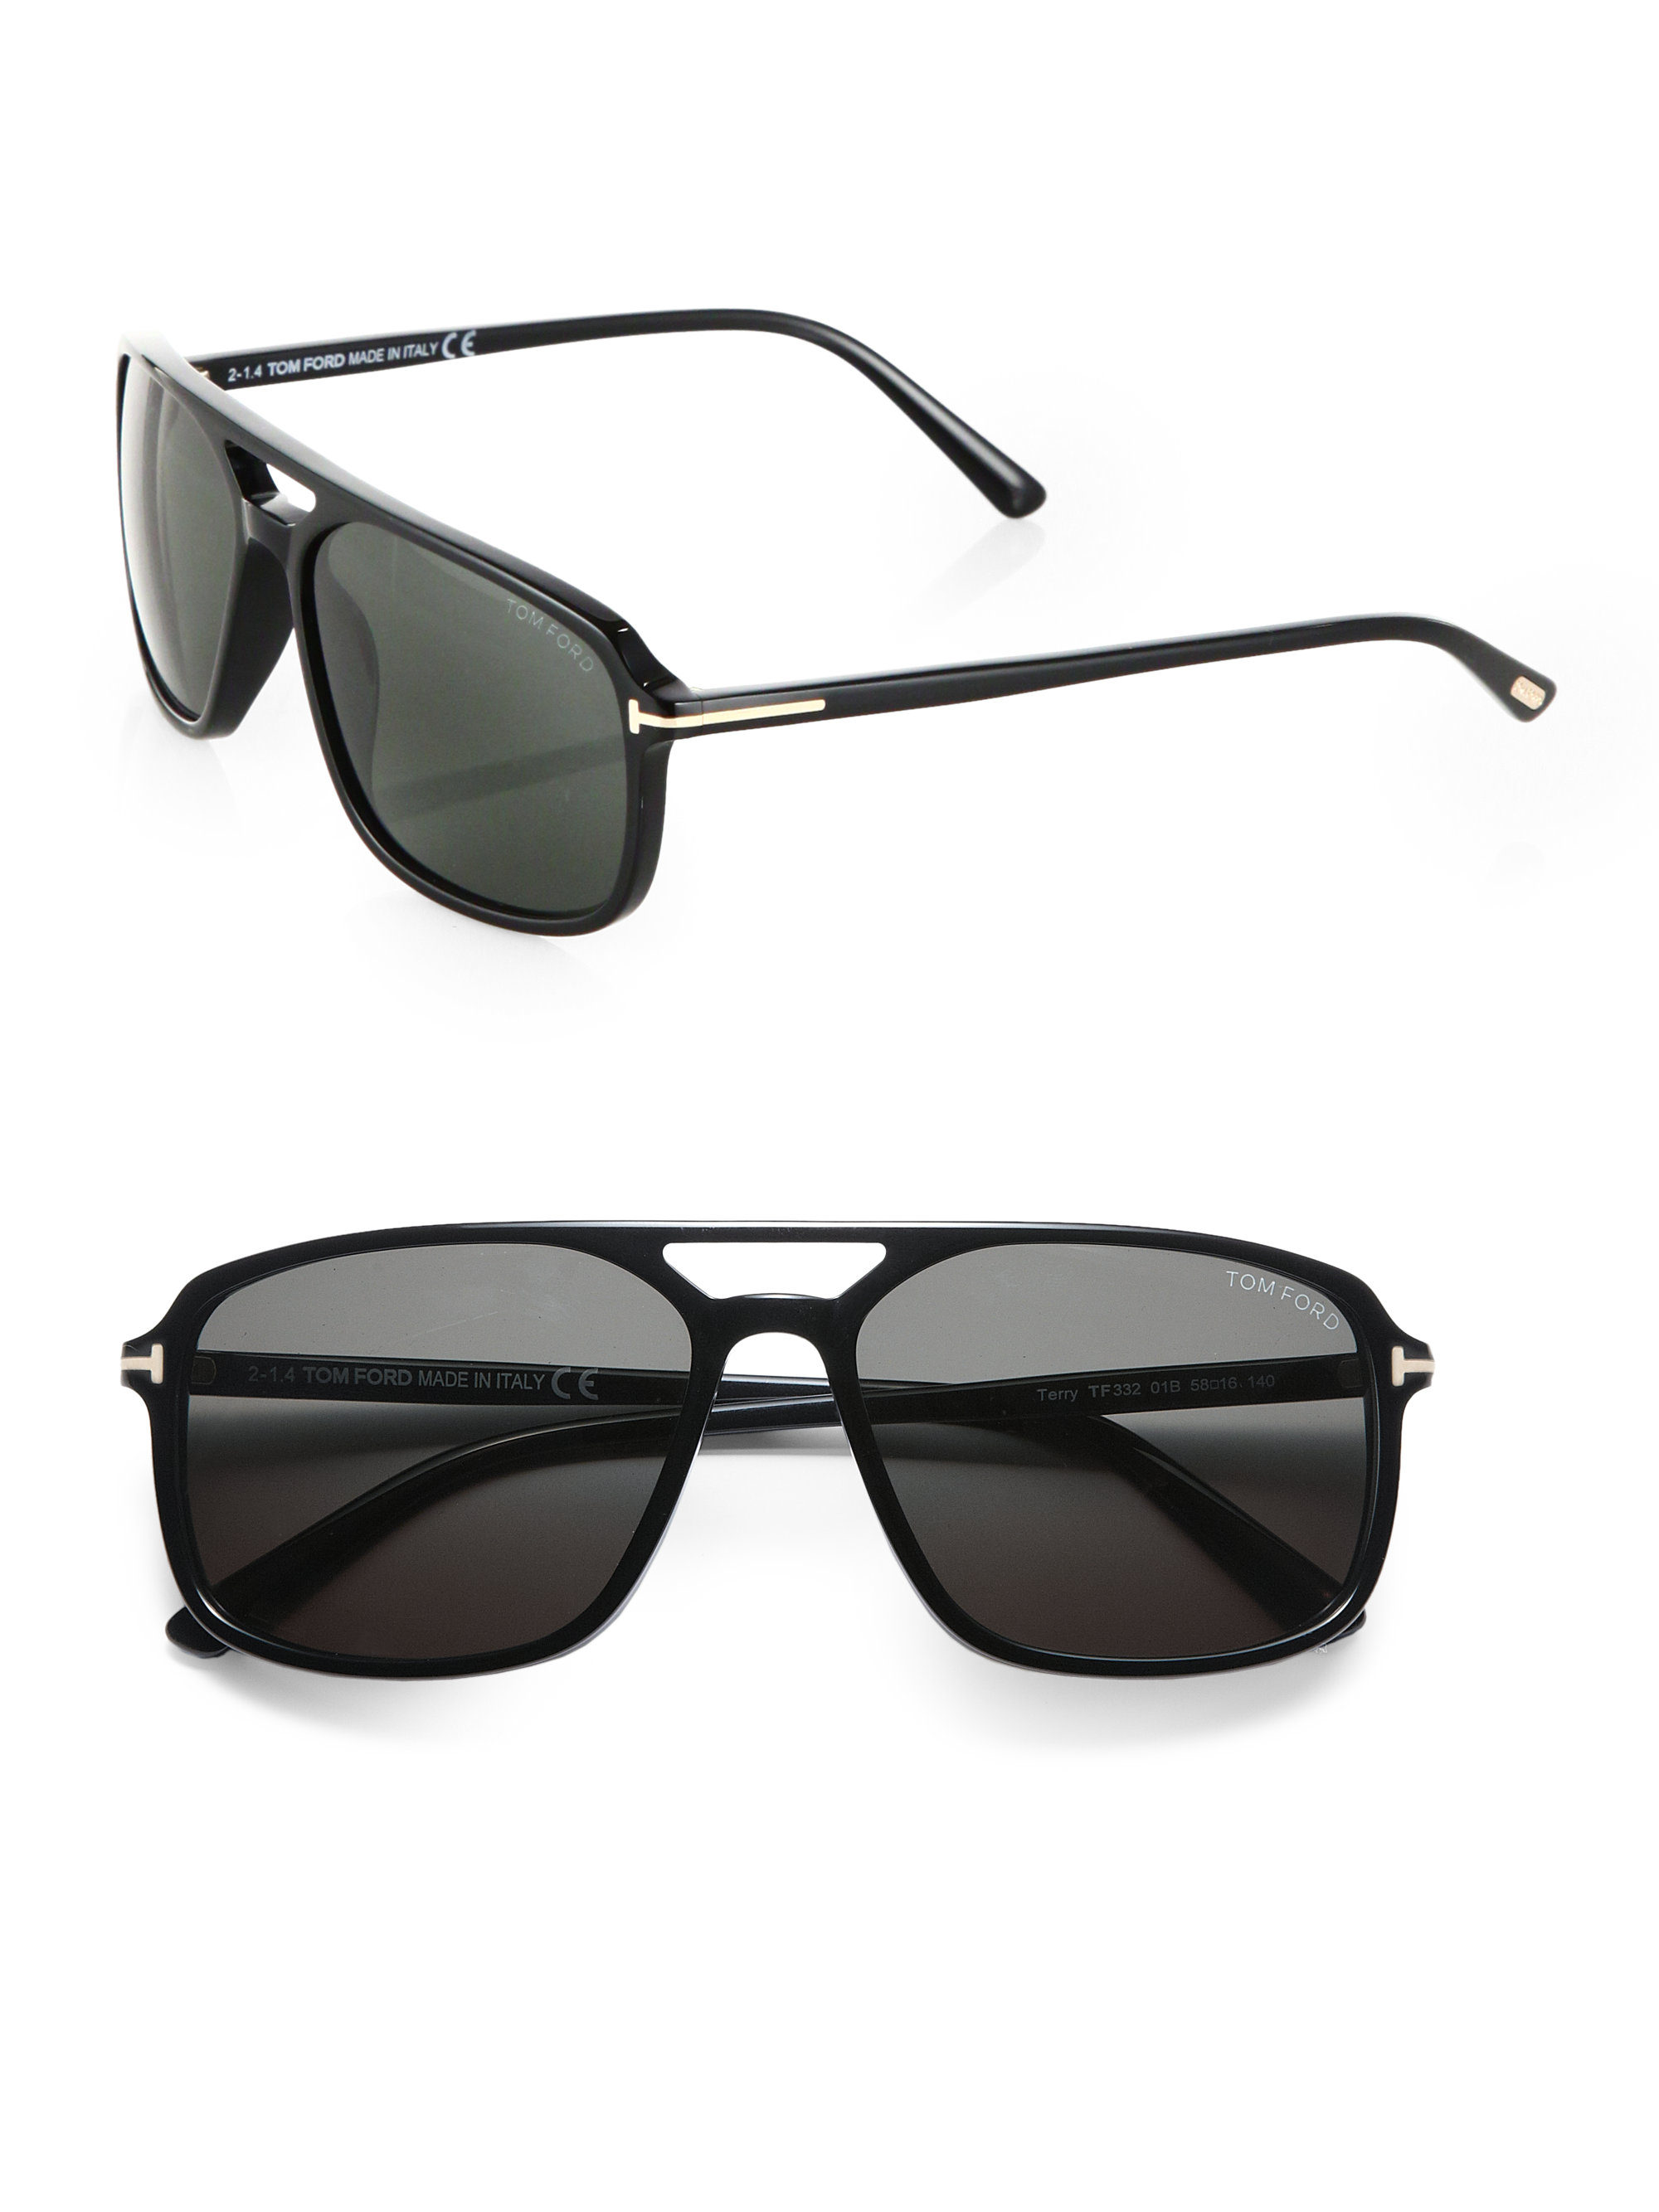 lyst tom ford flynn 58mm acetate sunglasses in black for men. Black Bedroom Furniture Sets. Home Design Ideas